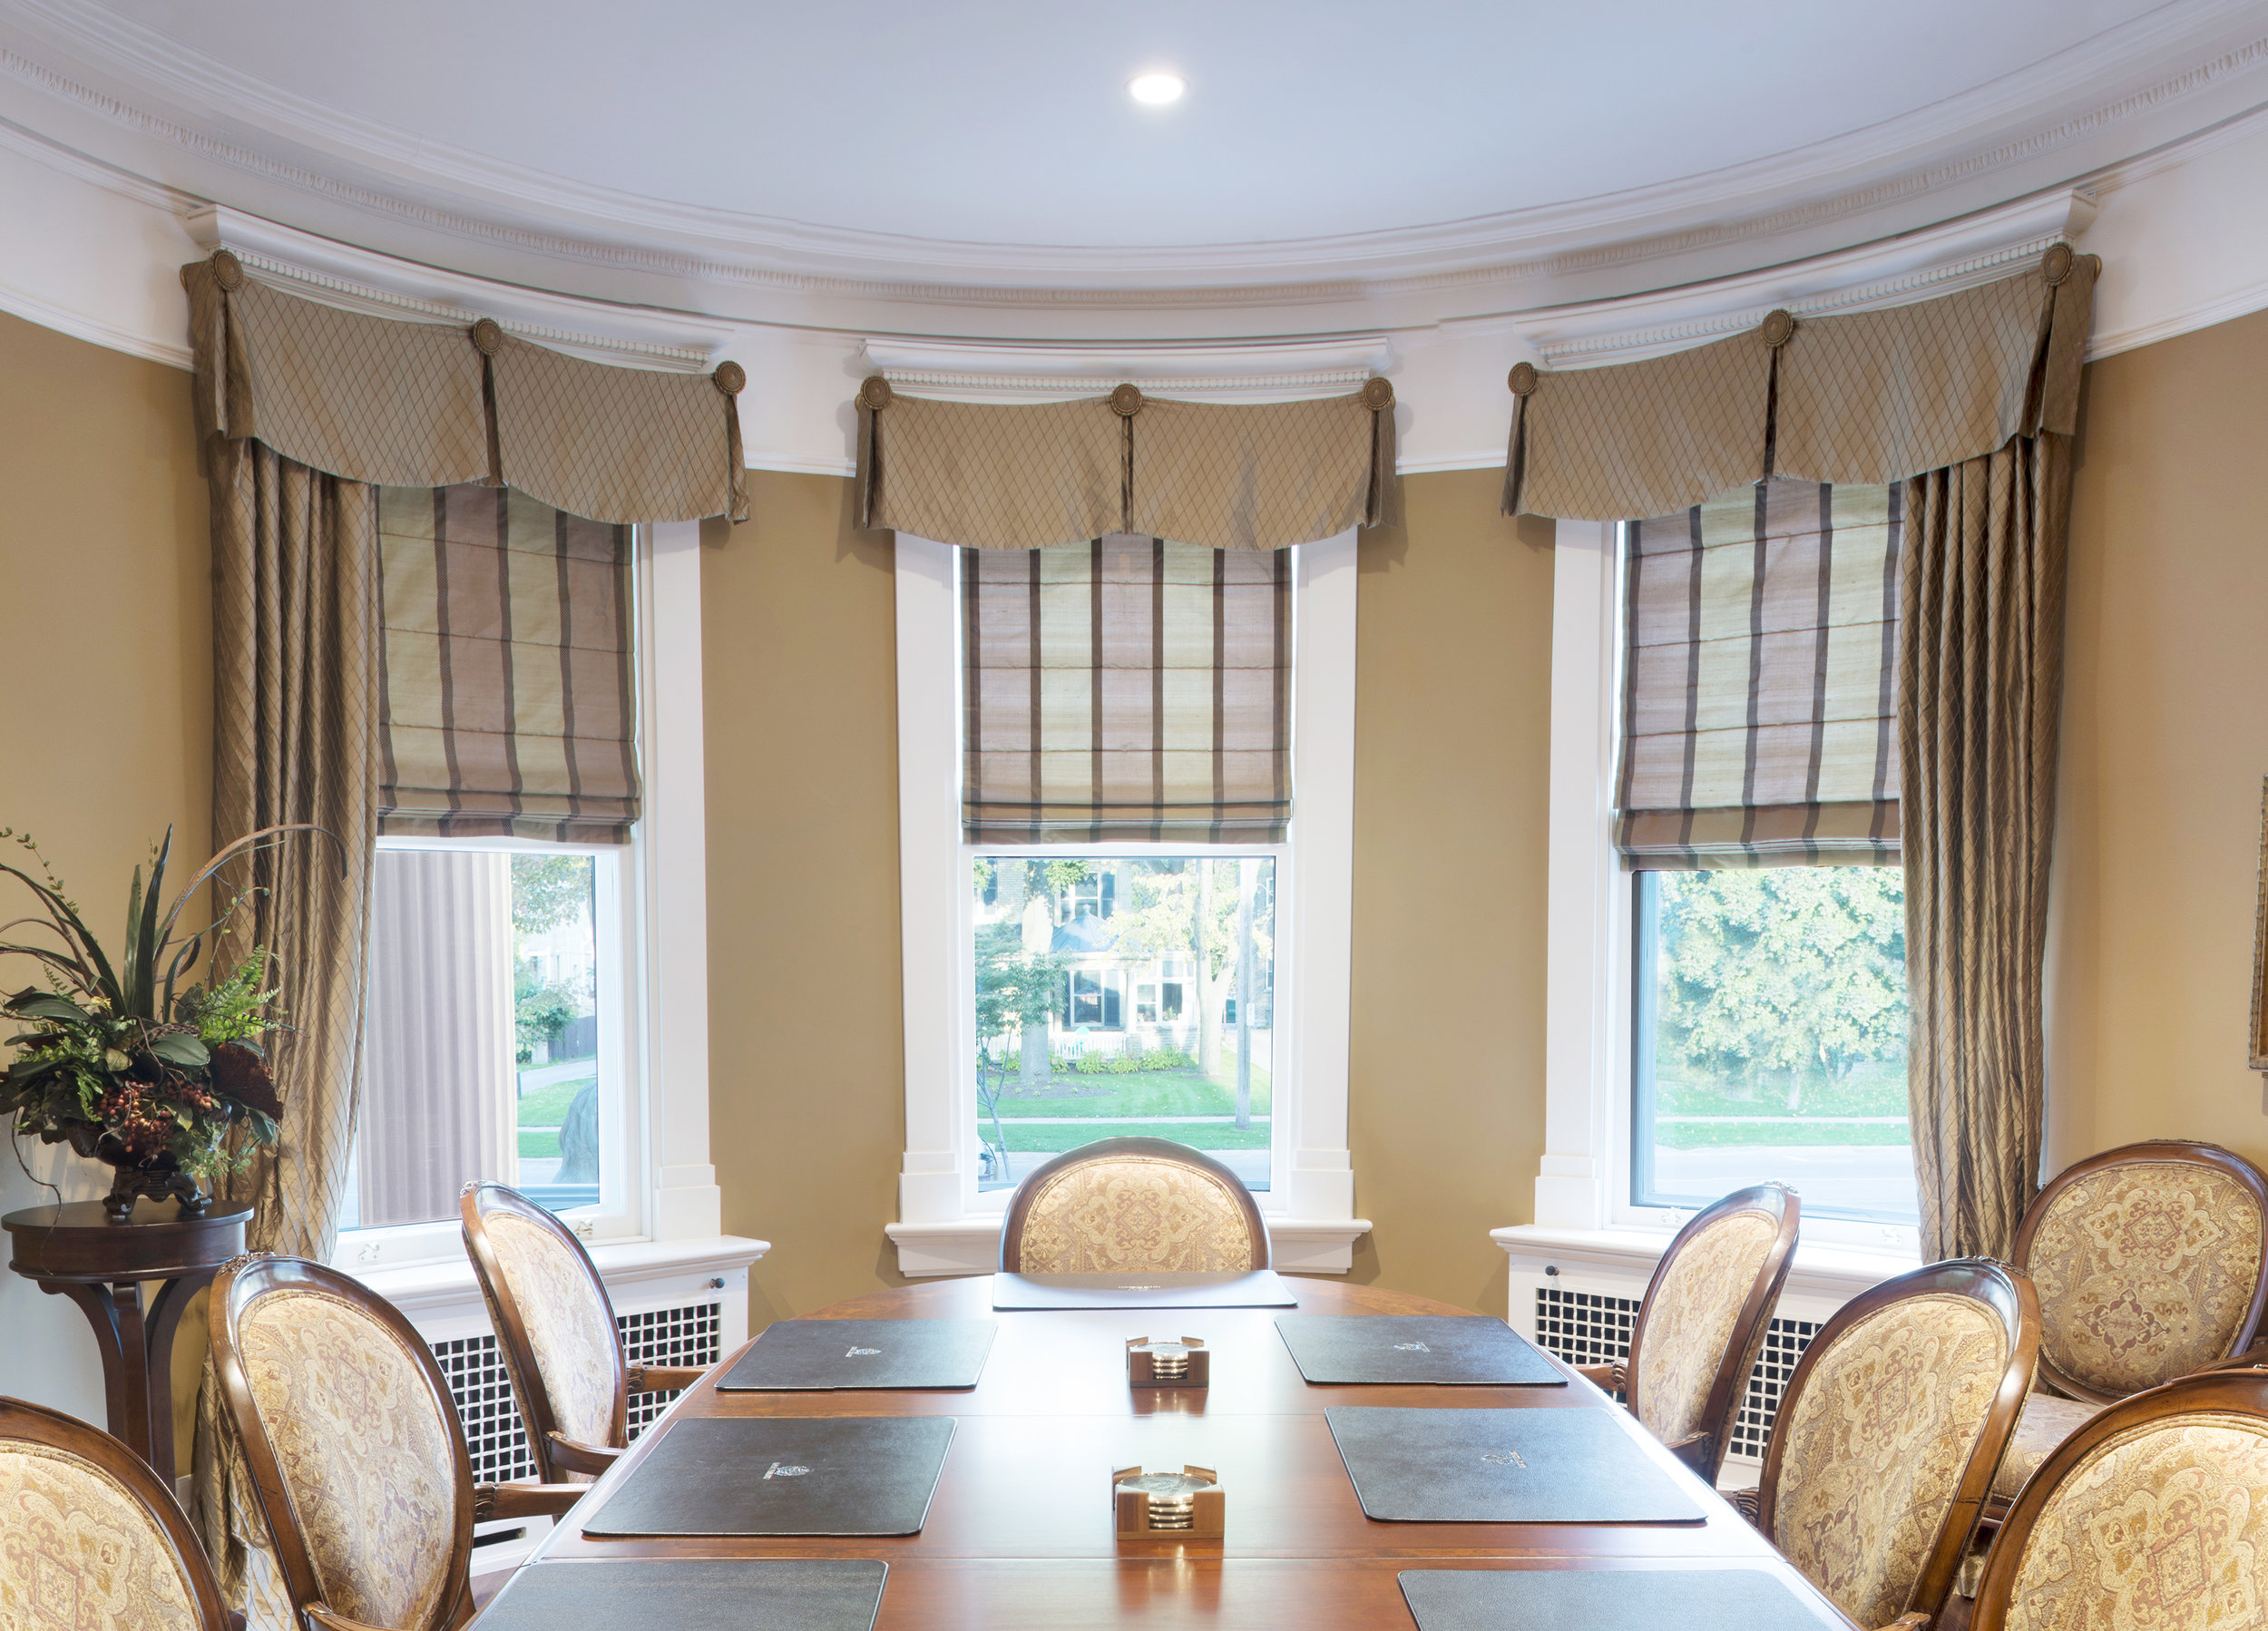 Custom Window Treatments - Choose from a wide variety of fabrics and styles. From California Shutters to Drapery, Window treatments are not only nice to look at but are functional for keeping sunlight out and for giving you privacy.